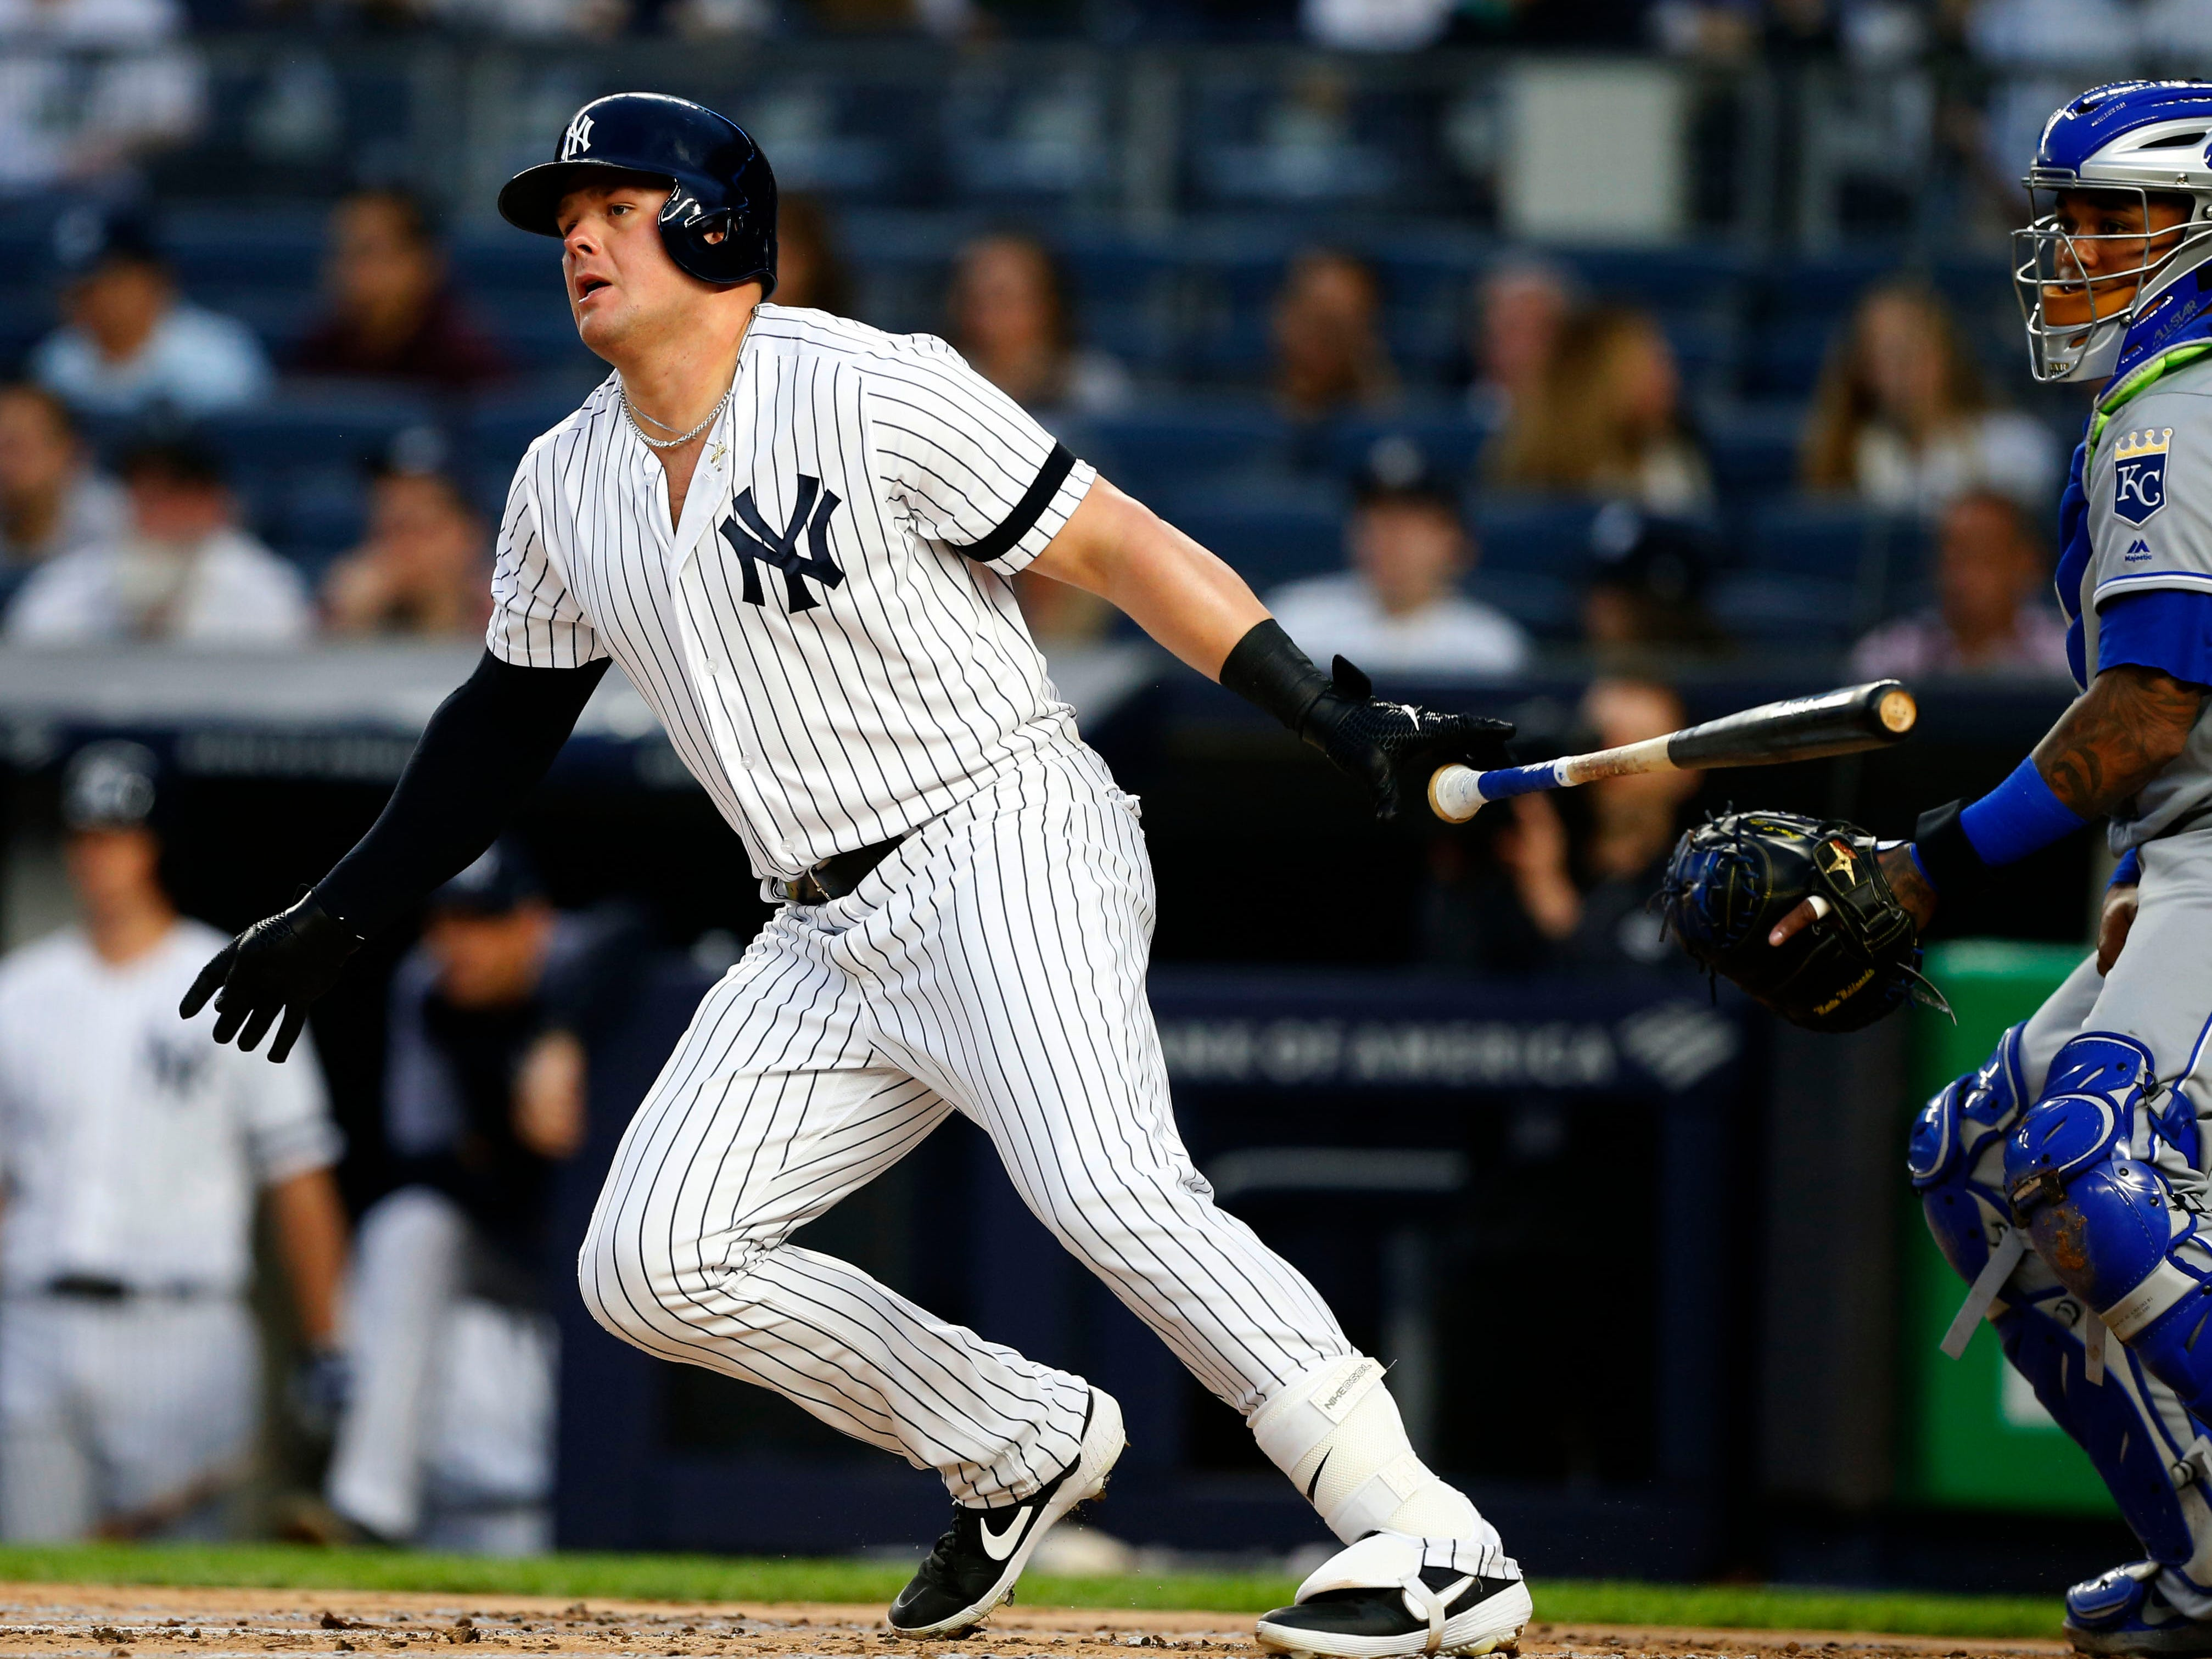 Apr 19, 2019; Bronx, NY, USA;  New York Yankees first baseman Luke Voit (45) tosses his bat after hitting a single in the first inning against the Kansas City Royals at Yankee Stadium.